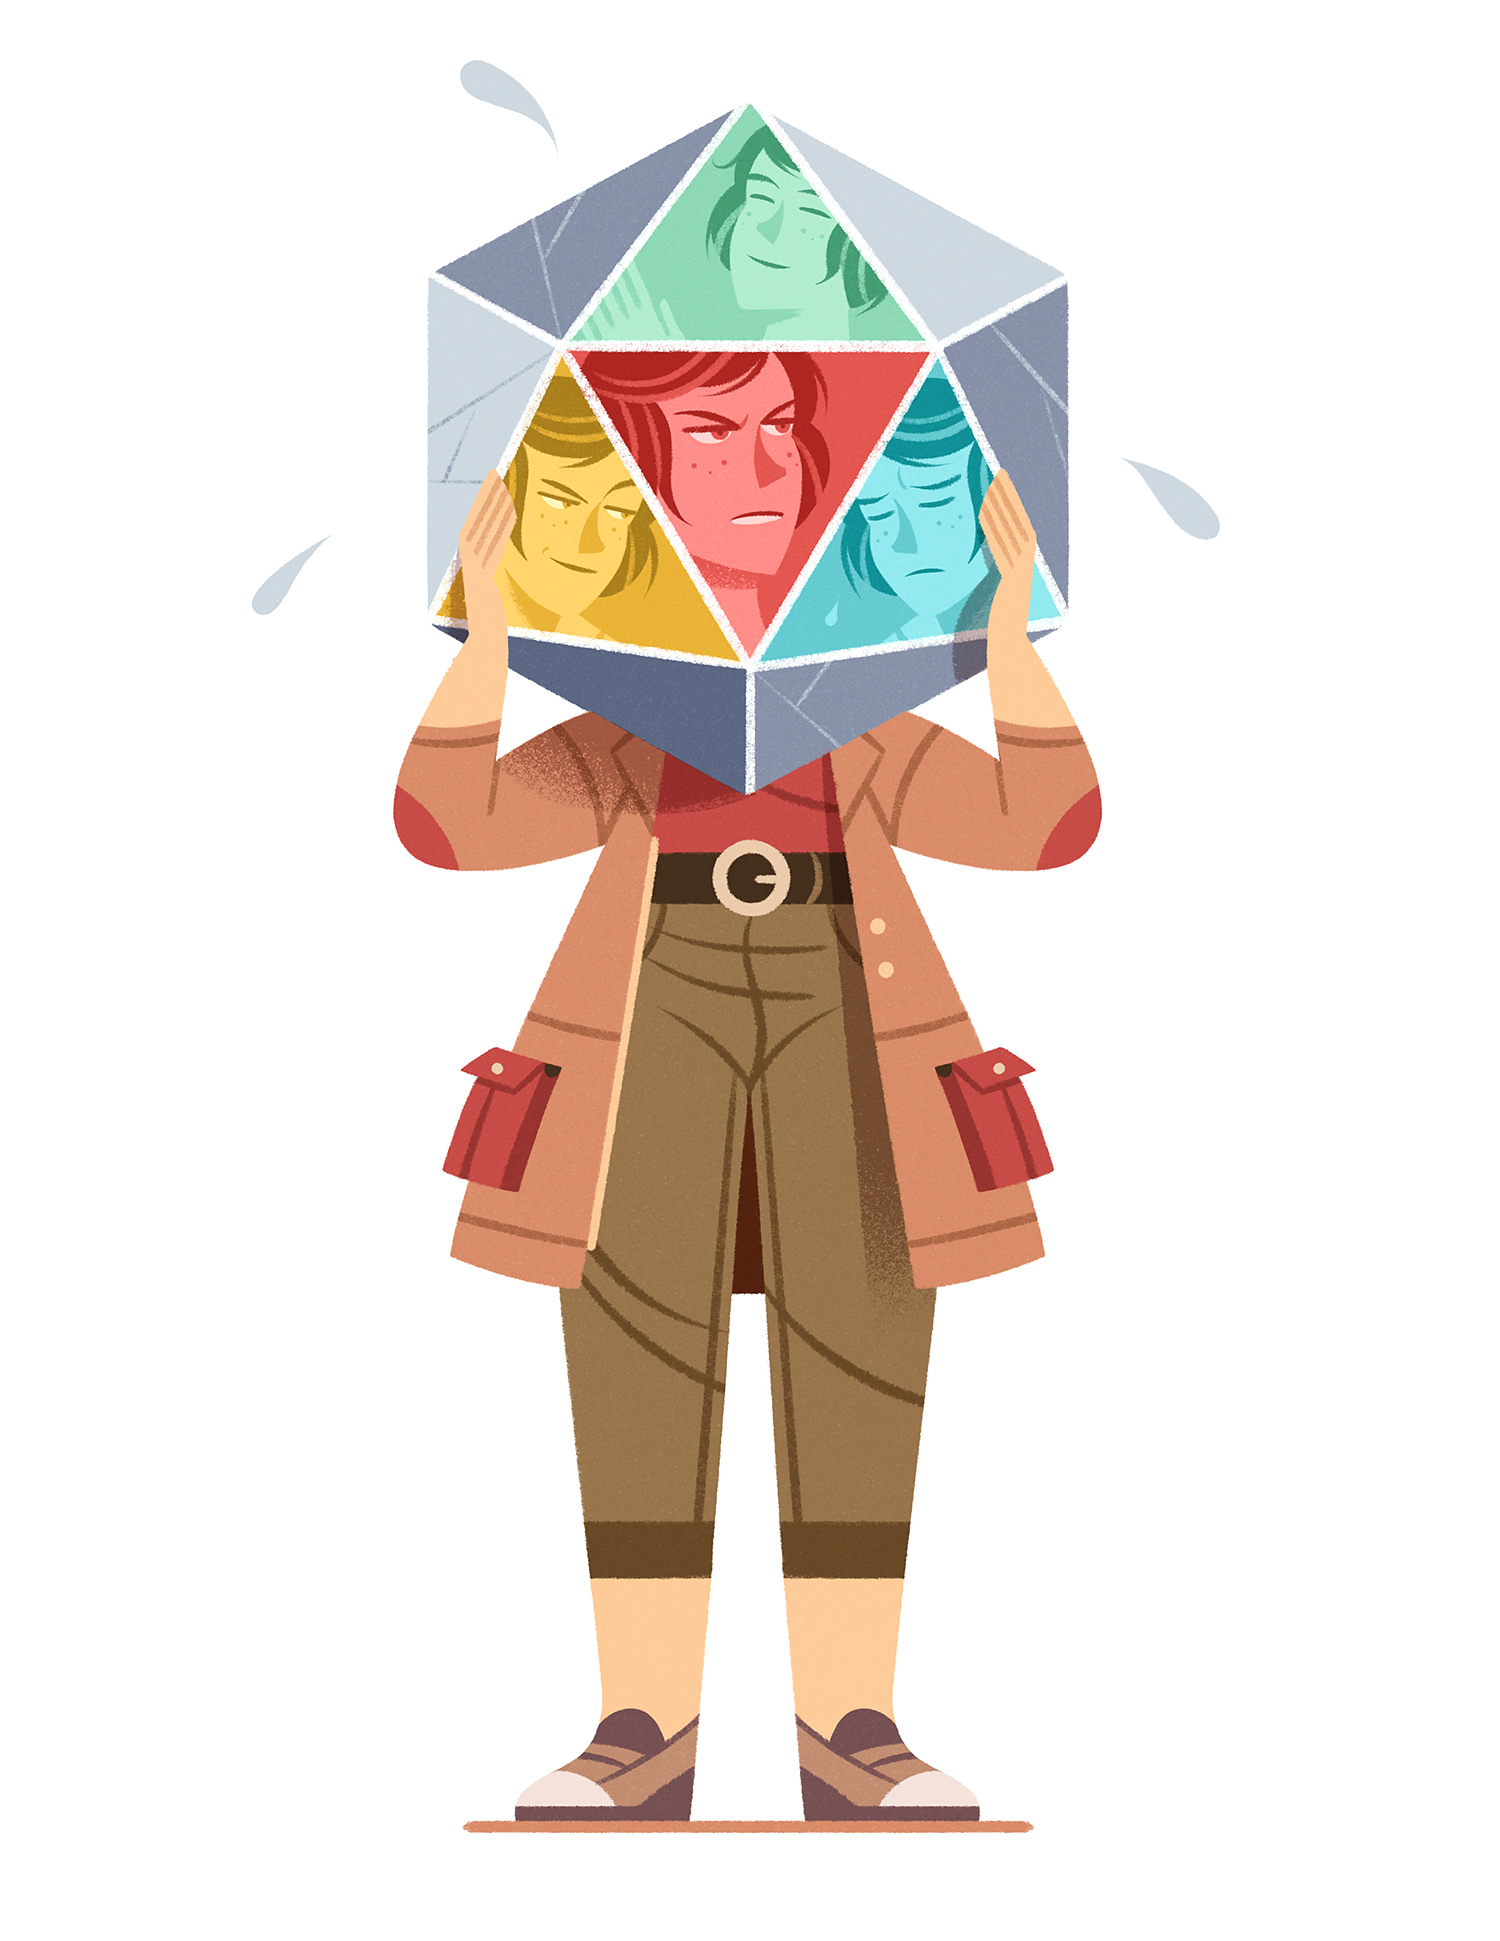 Polyhedral personality